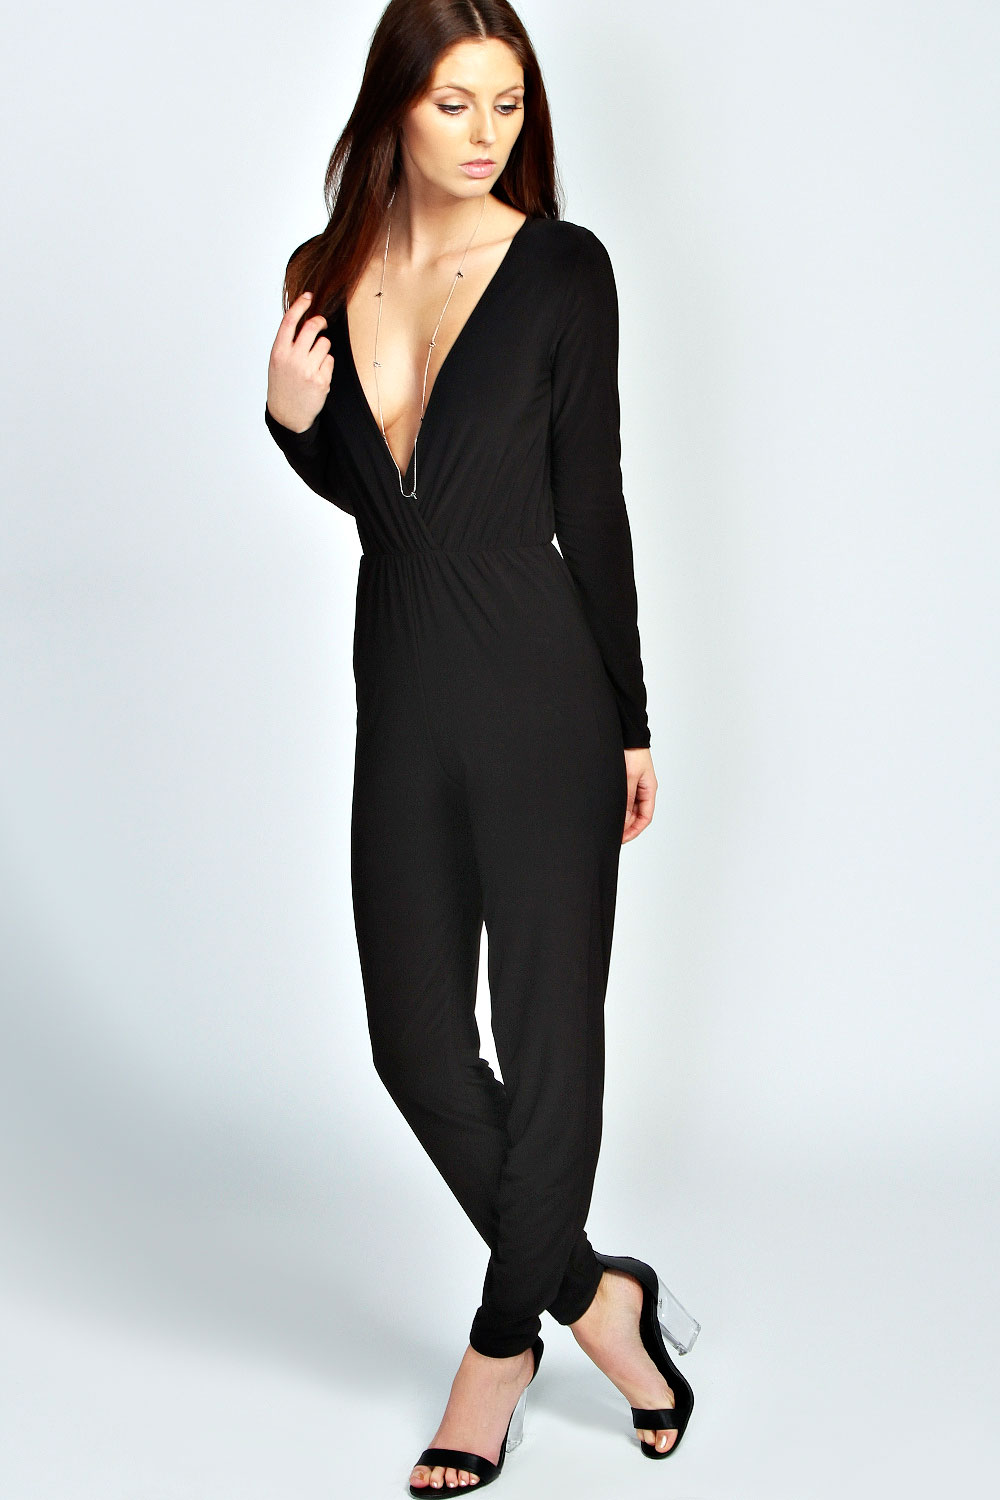 Wonderful Jumpsuits With Sleeves For Women Modern Woman Square Collar